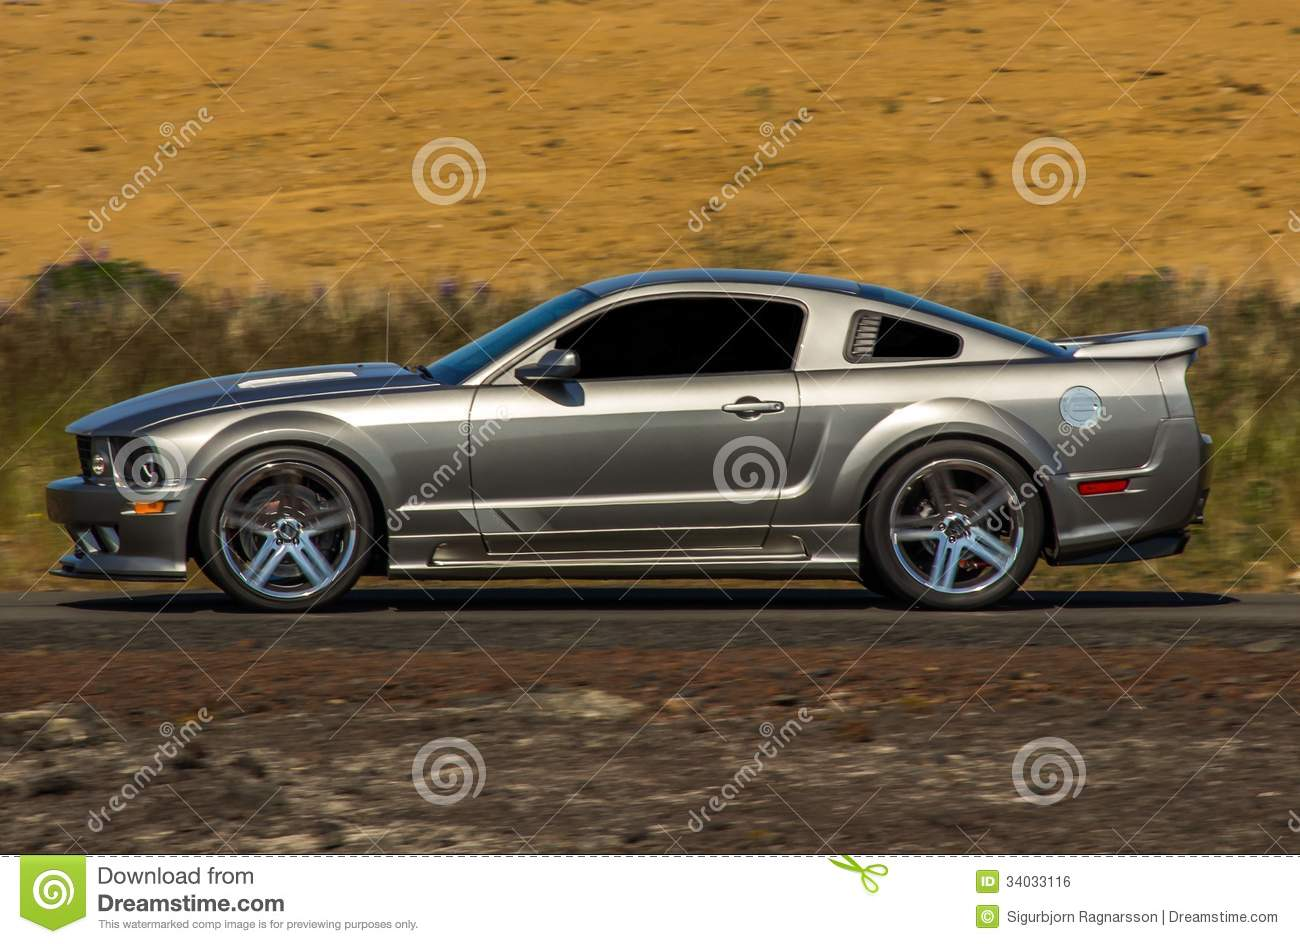 Ford Mustang Saleen Royalty Free Stock Image Image 34033116